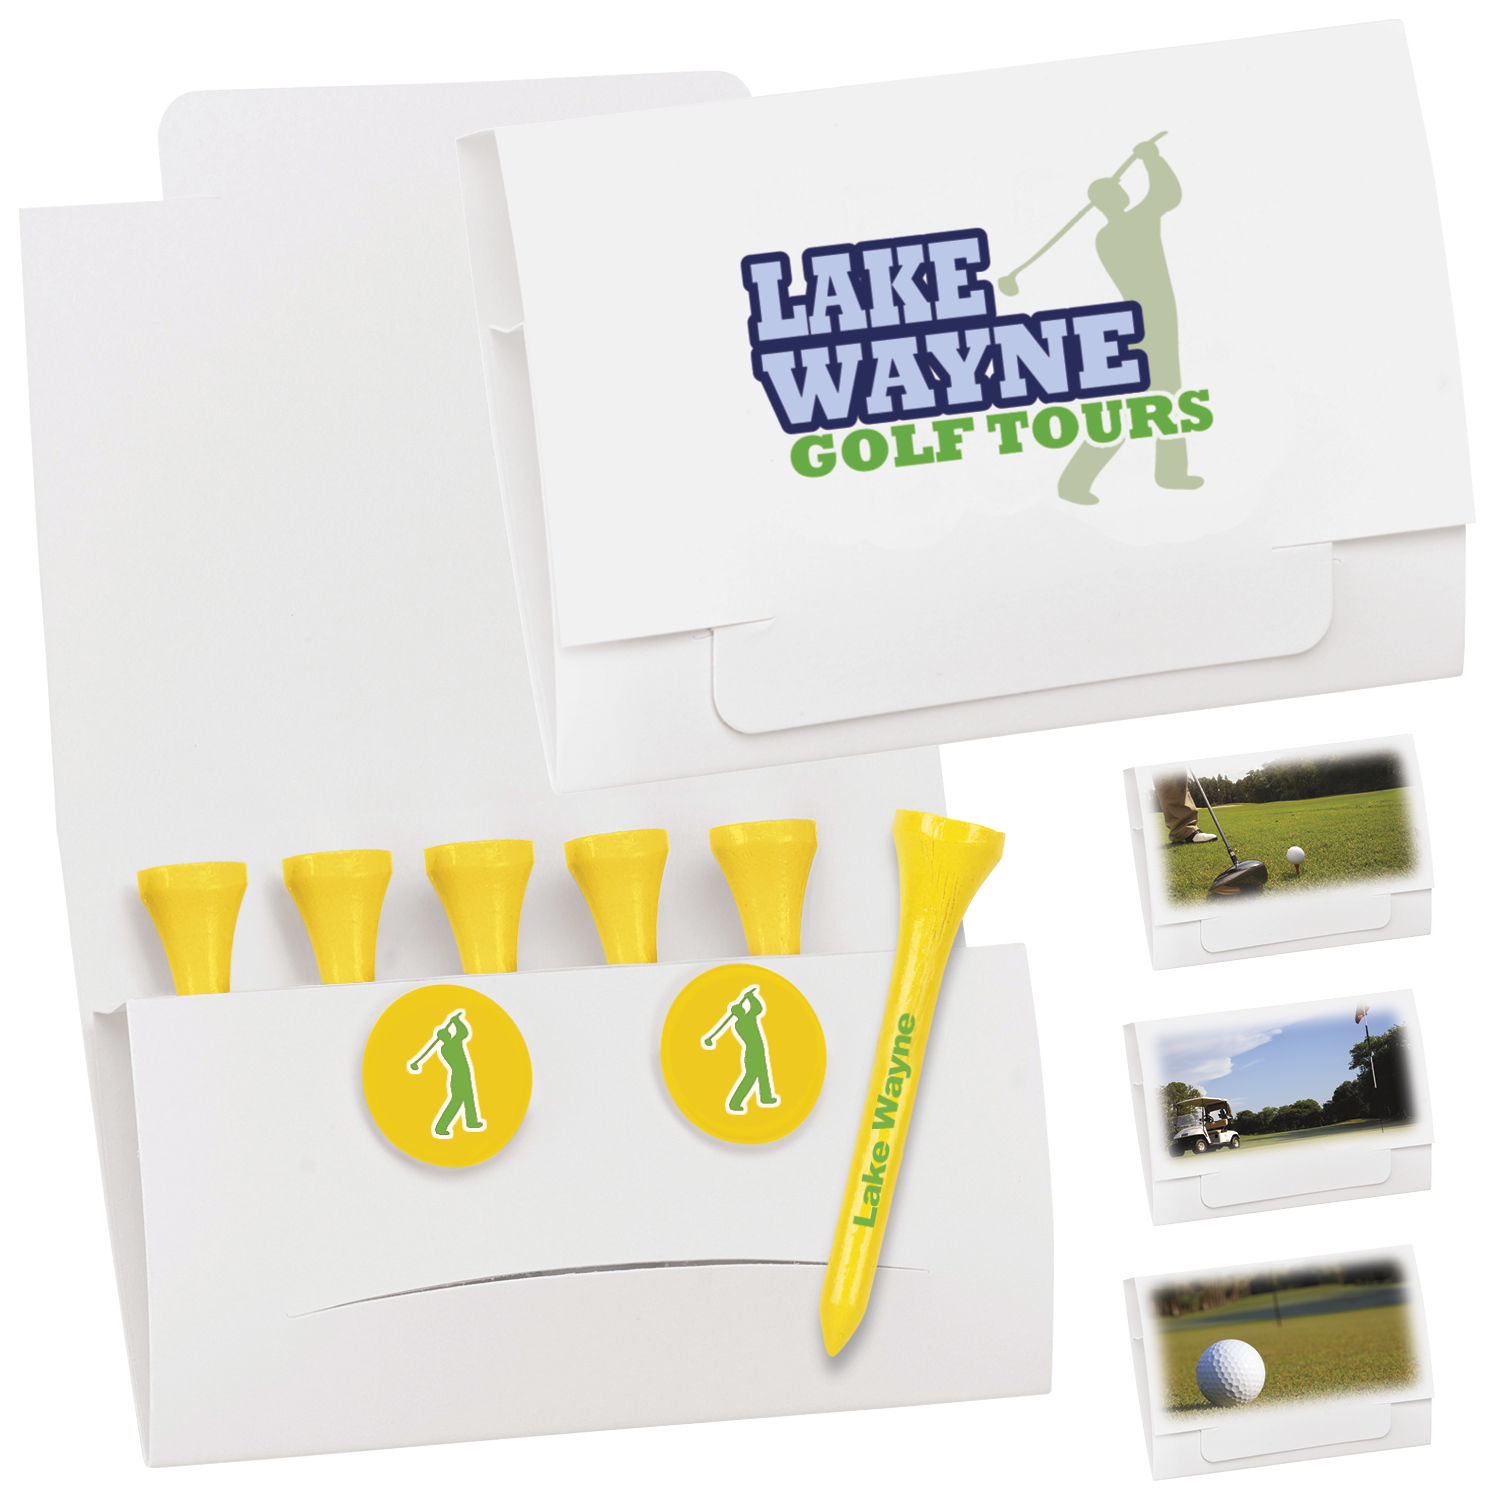 6-2 Golf Tee Packet w/ 2 Ball Markers - 2 3/4